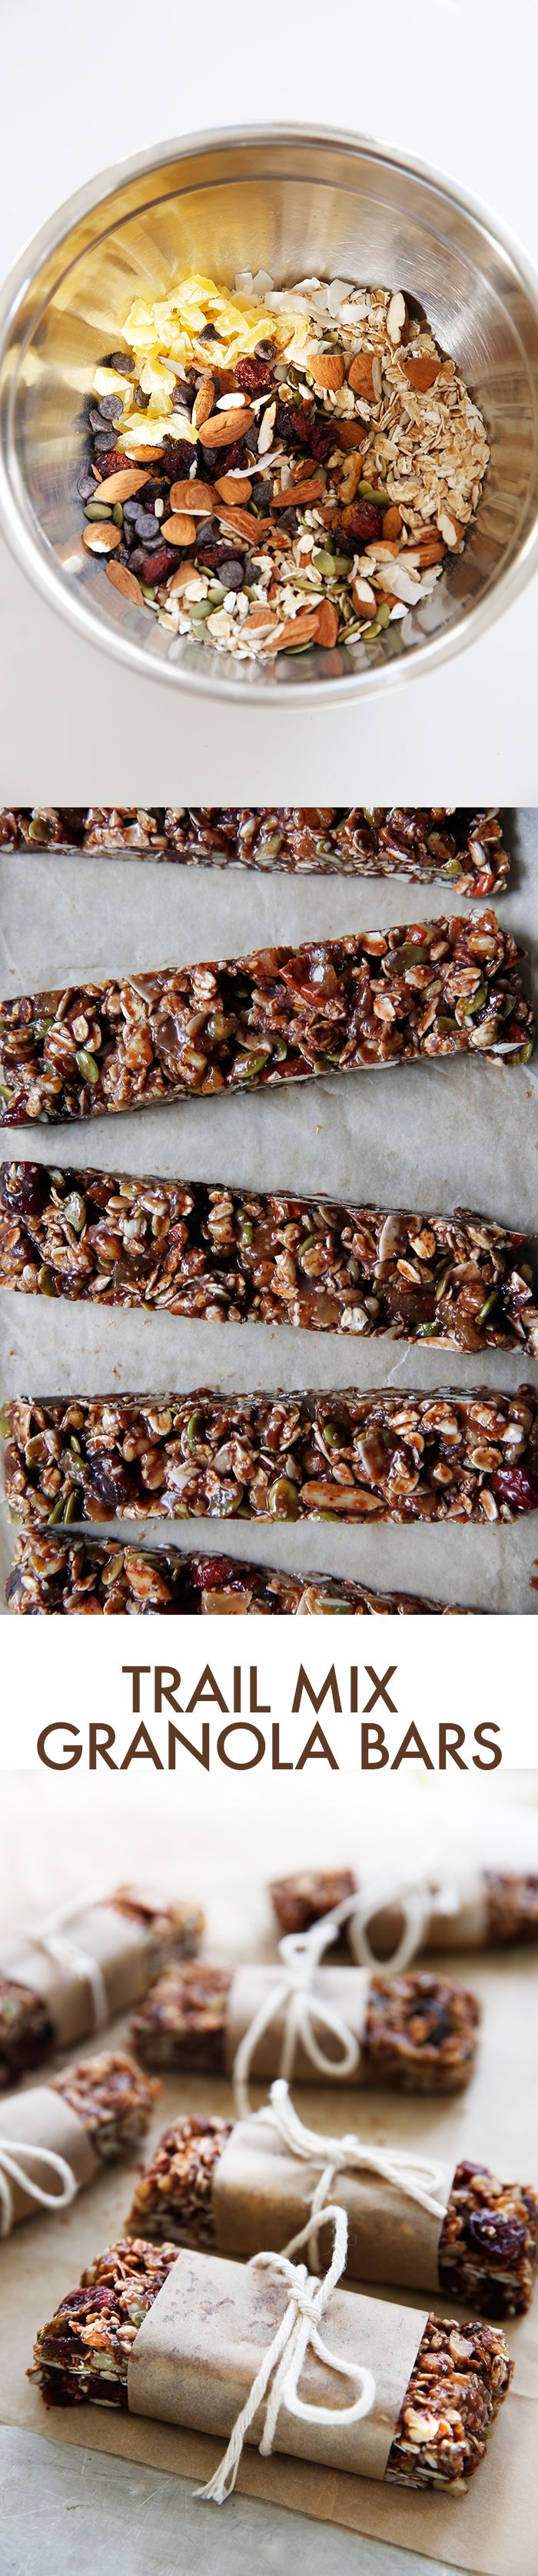 Trail Mix Granola Bars (gluten-free) | Lexi's Clean Kitchen